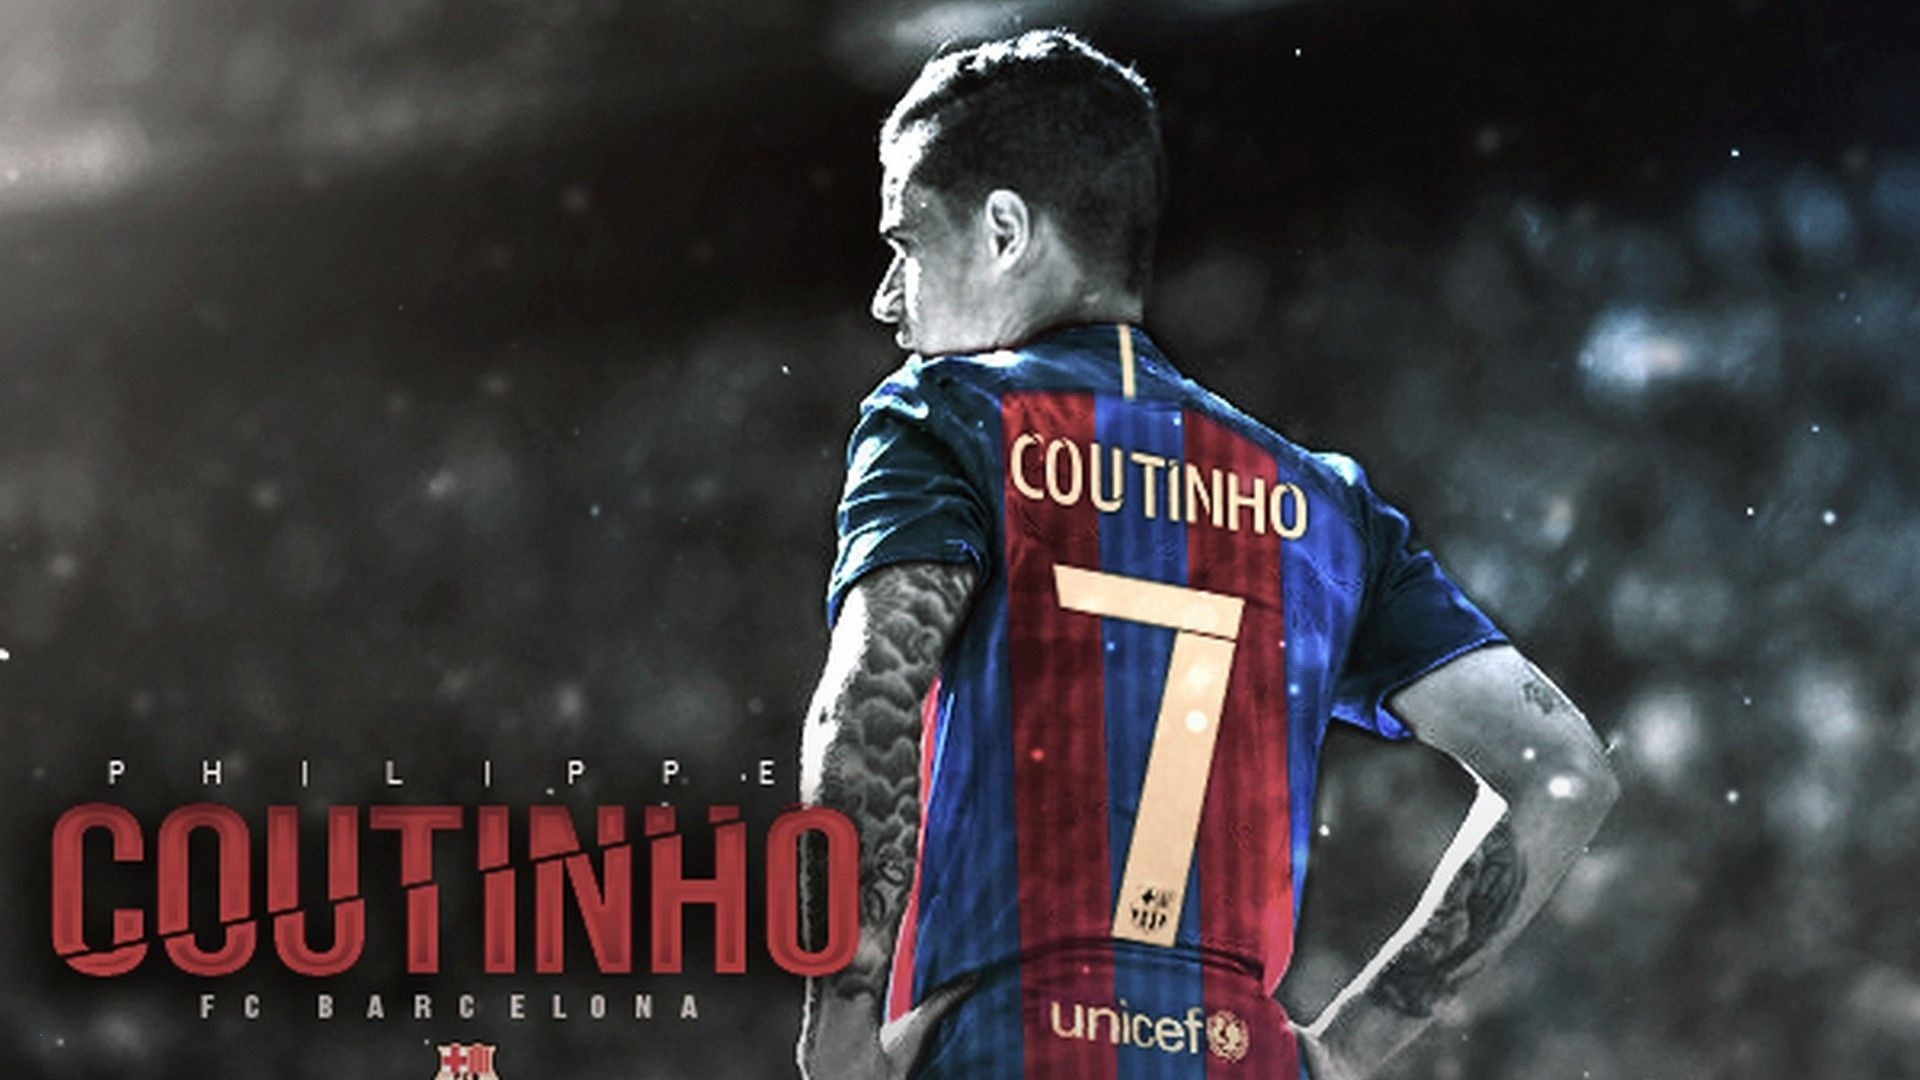 Fc barcelona 2018 wallpapers 72 background pictures - Coutinho wallpaper hd ...